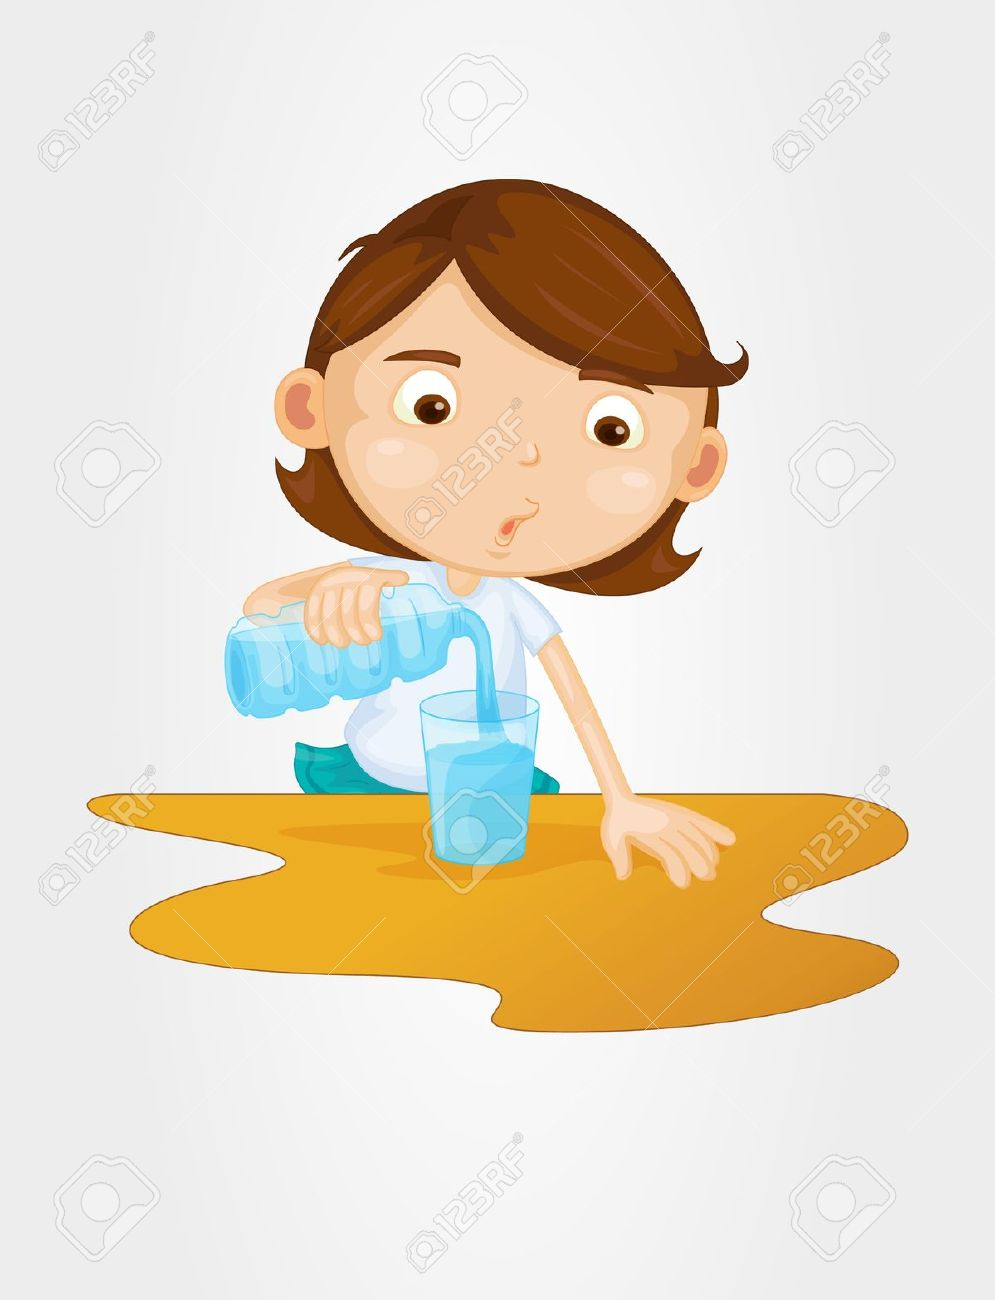 Pour water clipart.